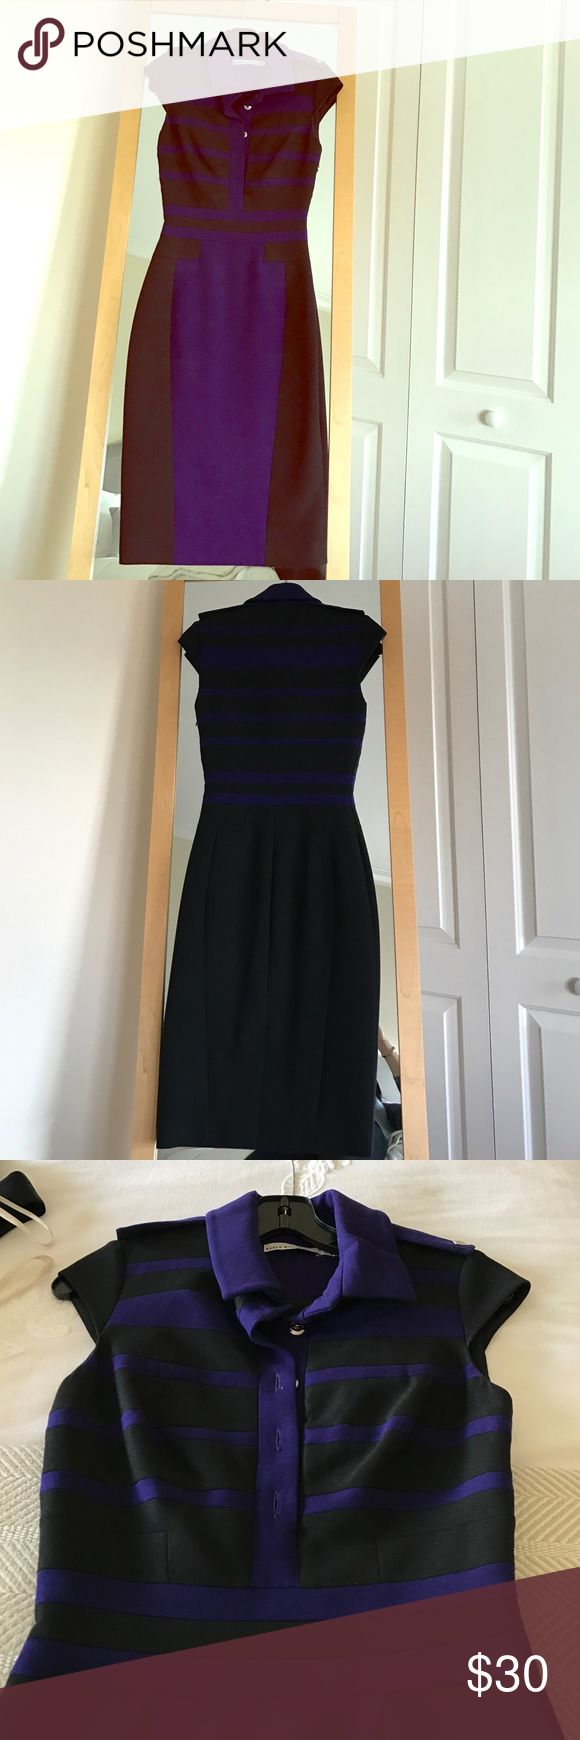 Karen Millen blue/black pencil dress U.K. 6 Karen Millen fitted pencil dress UK 6. Slim flattering fit I recommend more for a size 0. Knee length hidden side zipper. Perfect with black pumps. Worn once no major flaws. Karen Millen Dresses